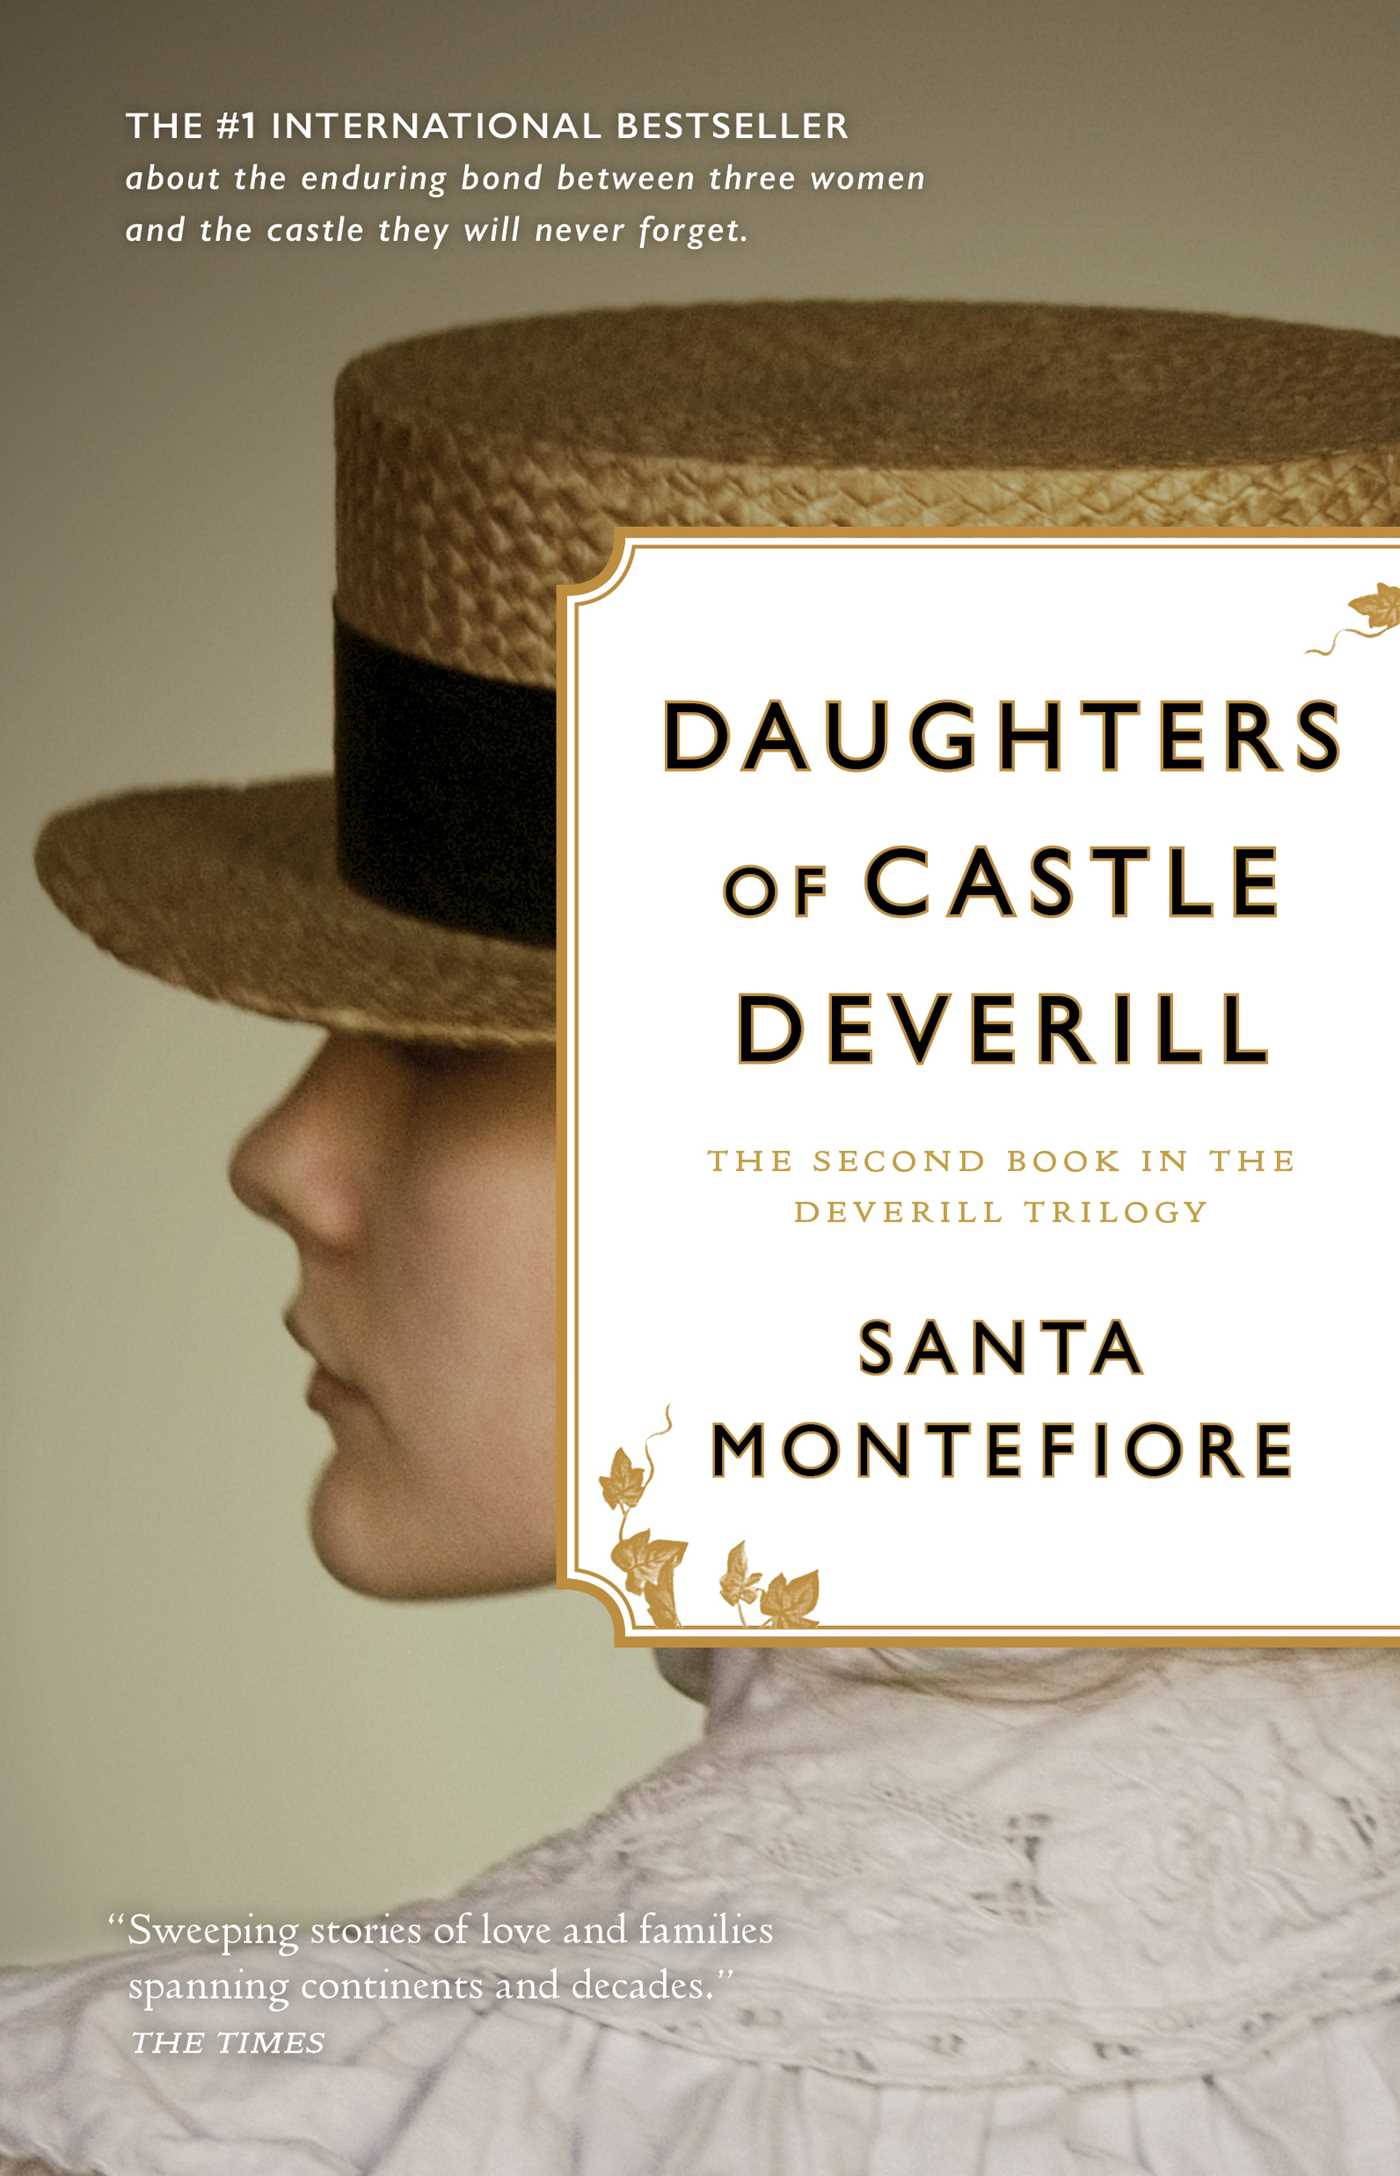 Daughters of castle deverill 9781471172830 hr